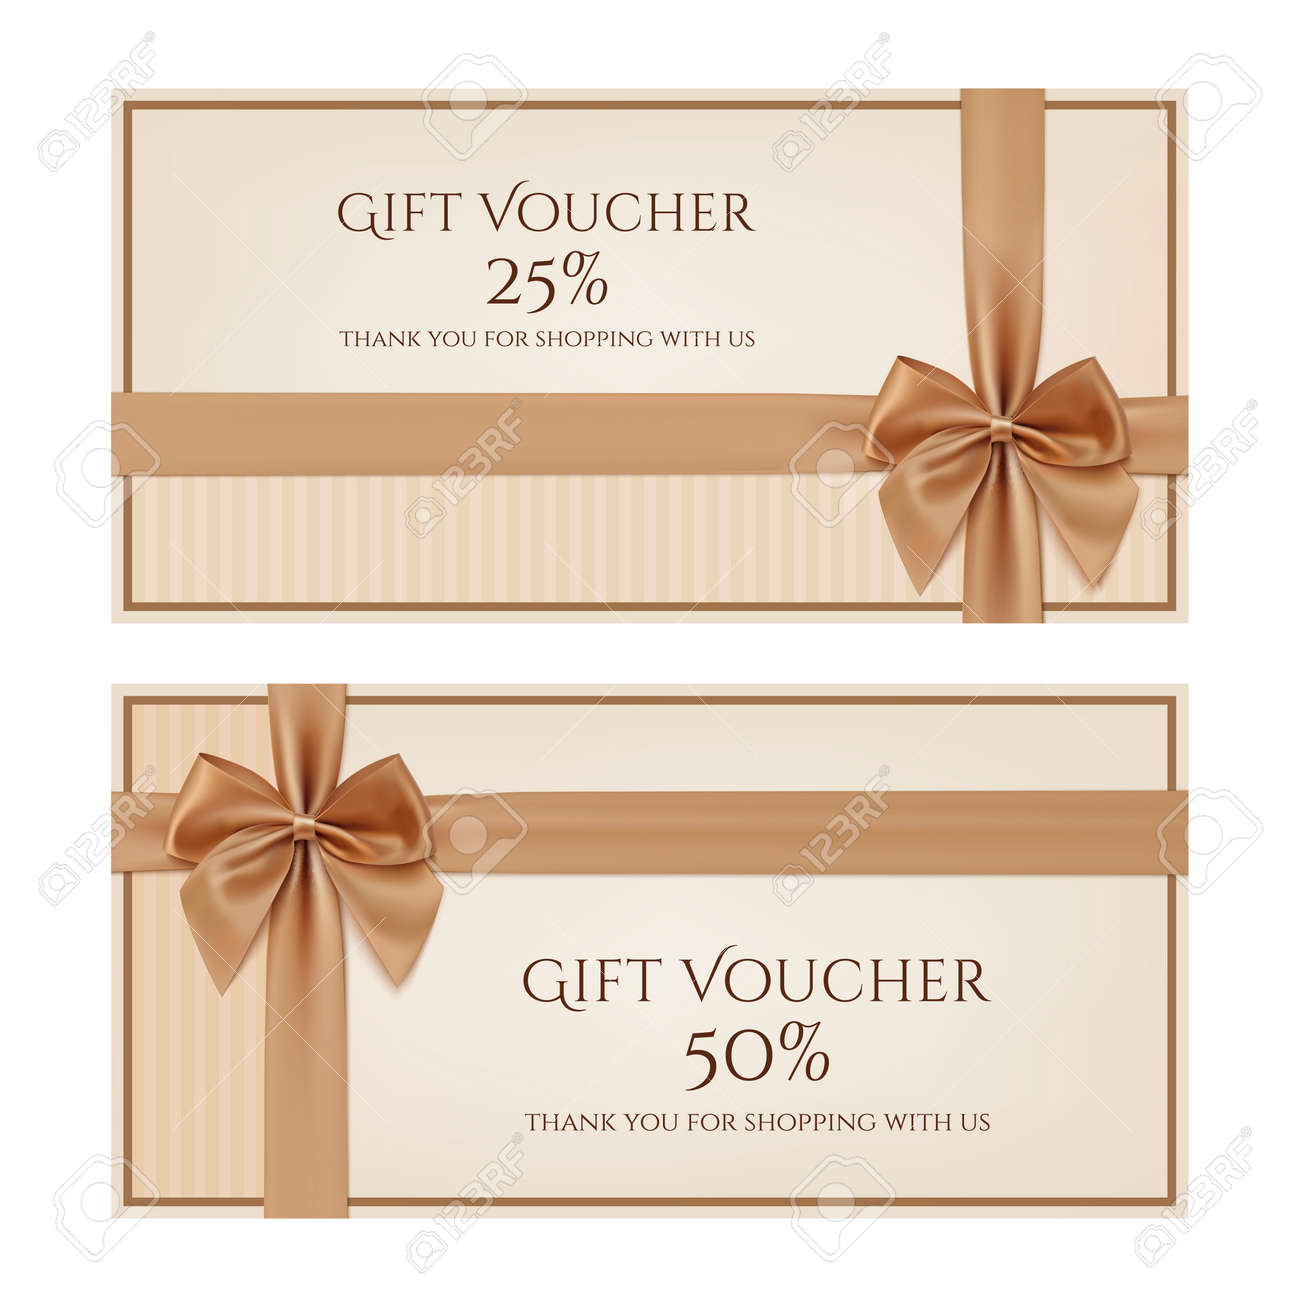 Gift Voucher Template With Golden Ribbon And A Bow Vector